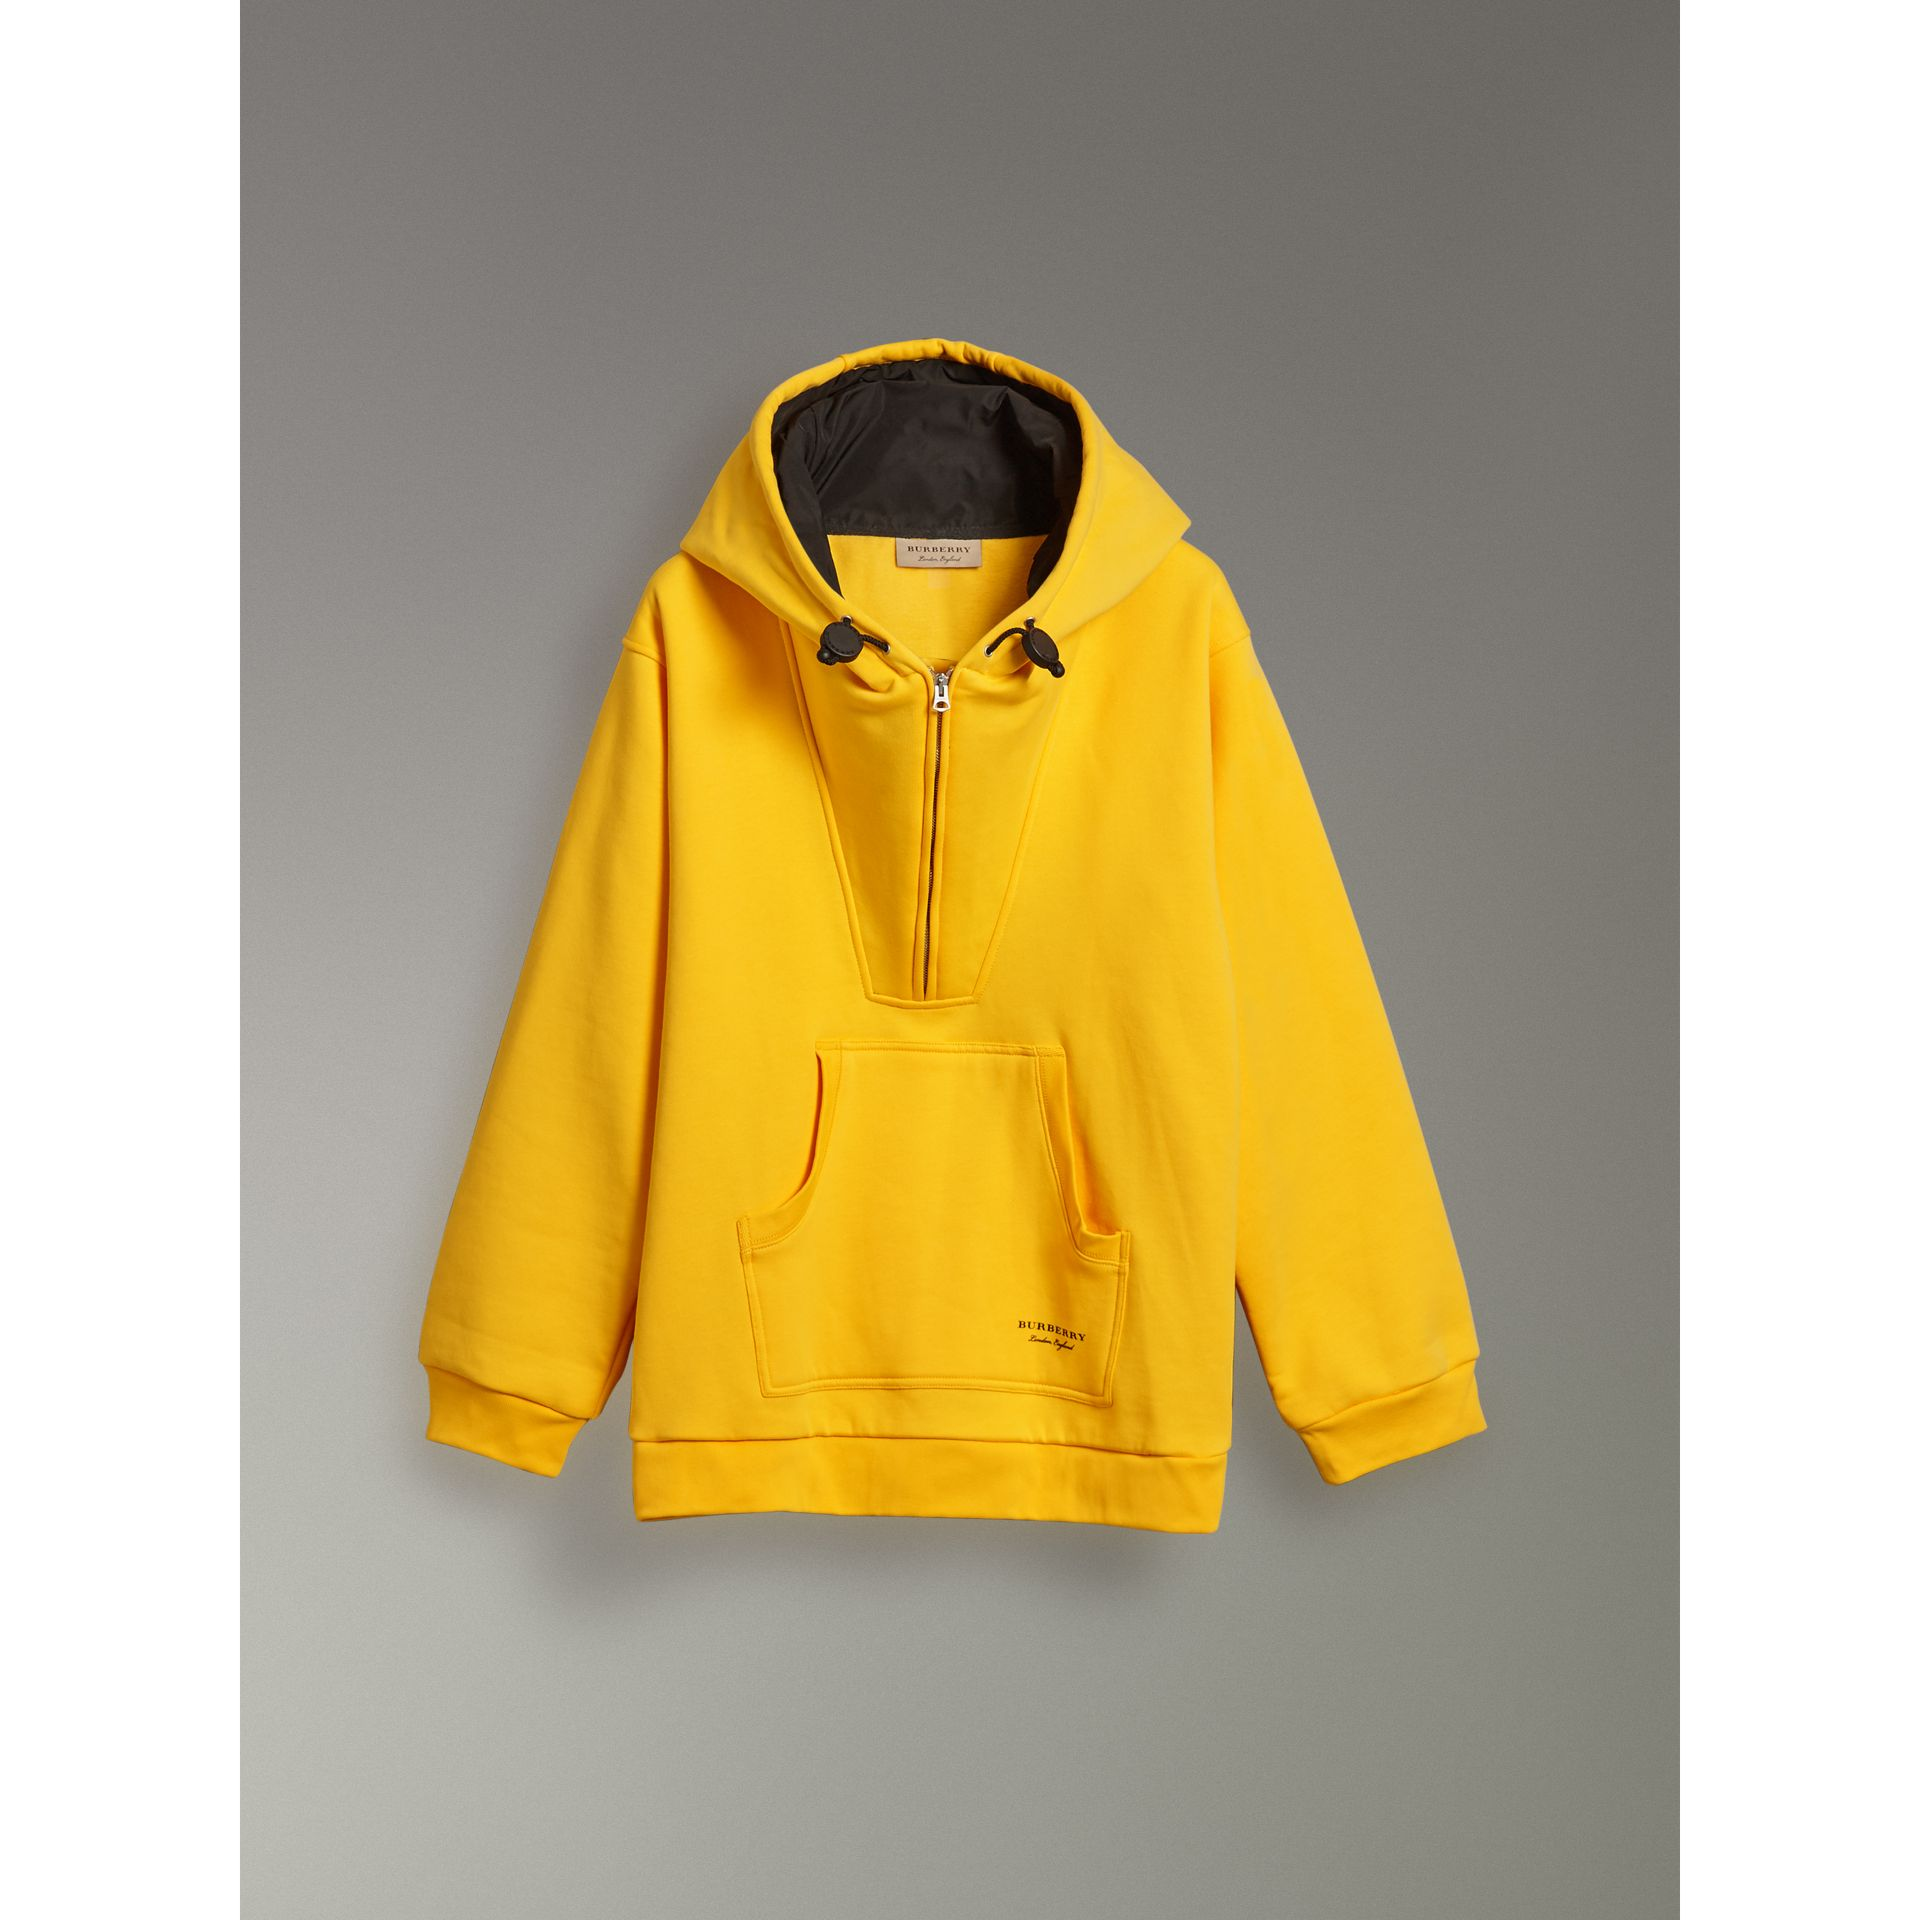 Oversized Sweatshirt Half-zip Hoodie in Bright Yellow - Men | Burberry United Kingdom - gallery image 3